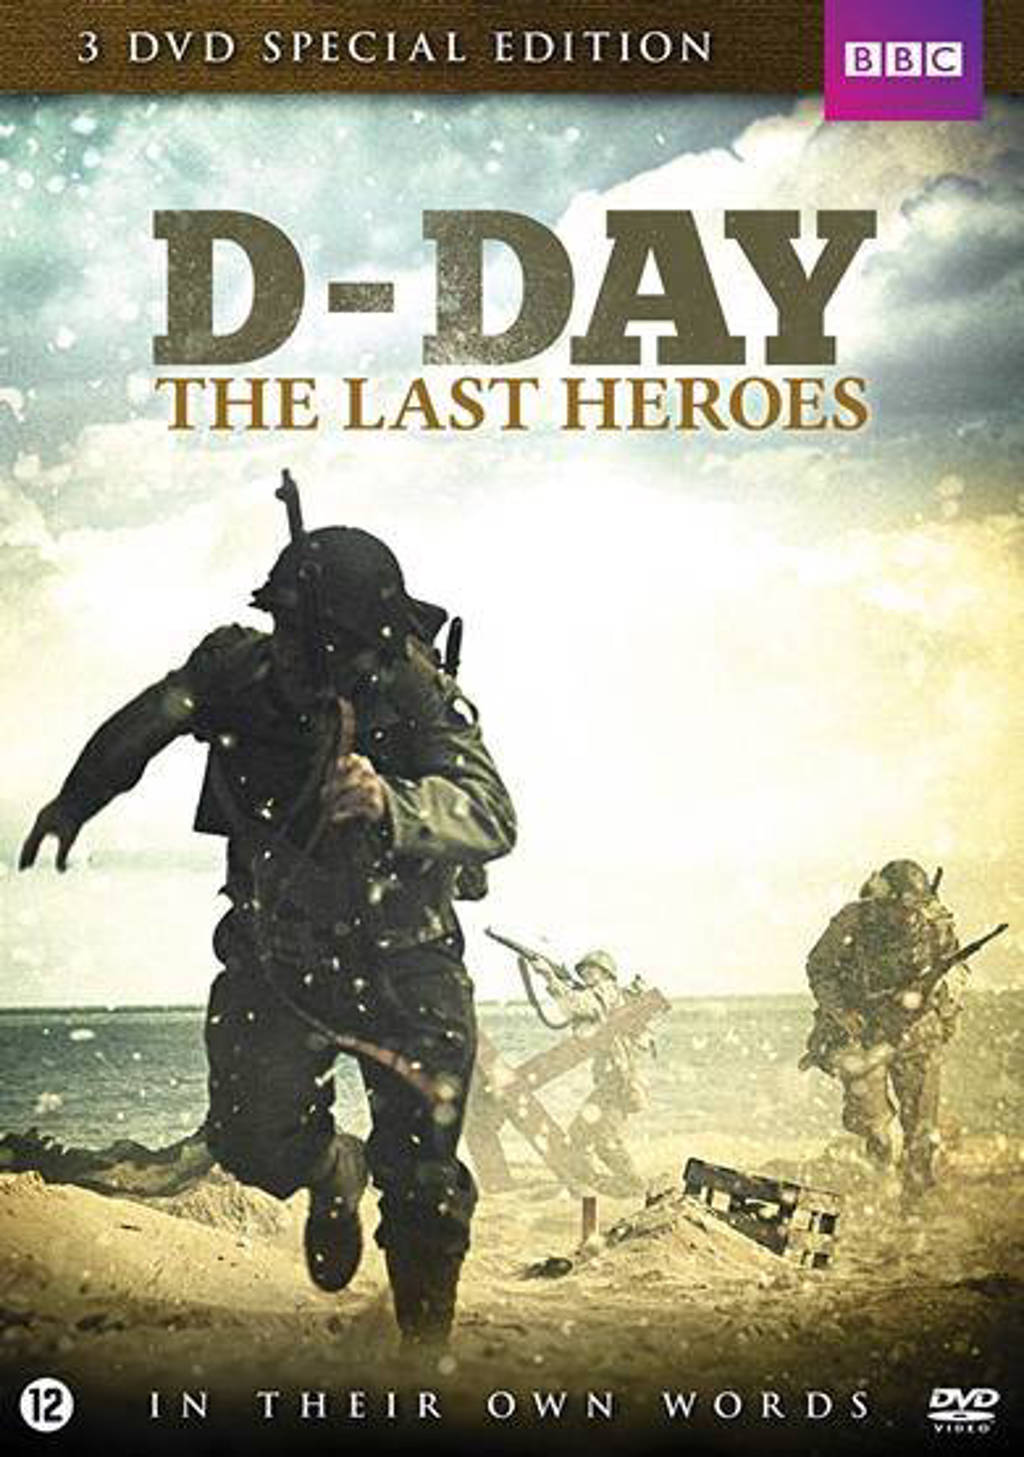 D-day - The last heroes (DVD)